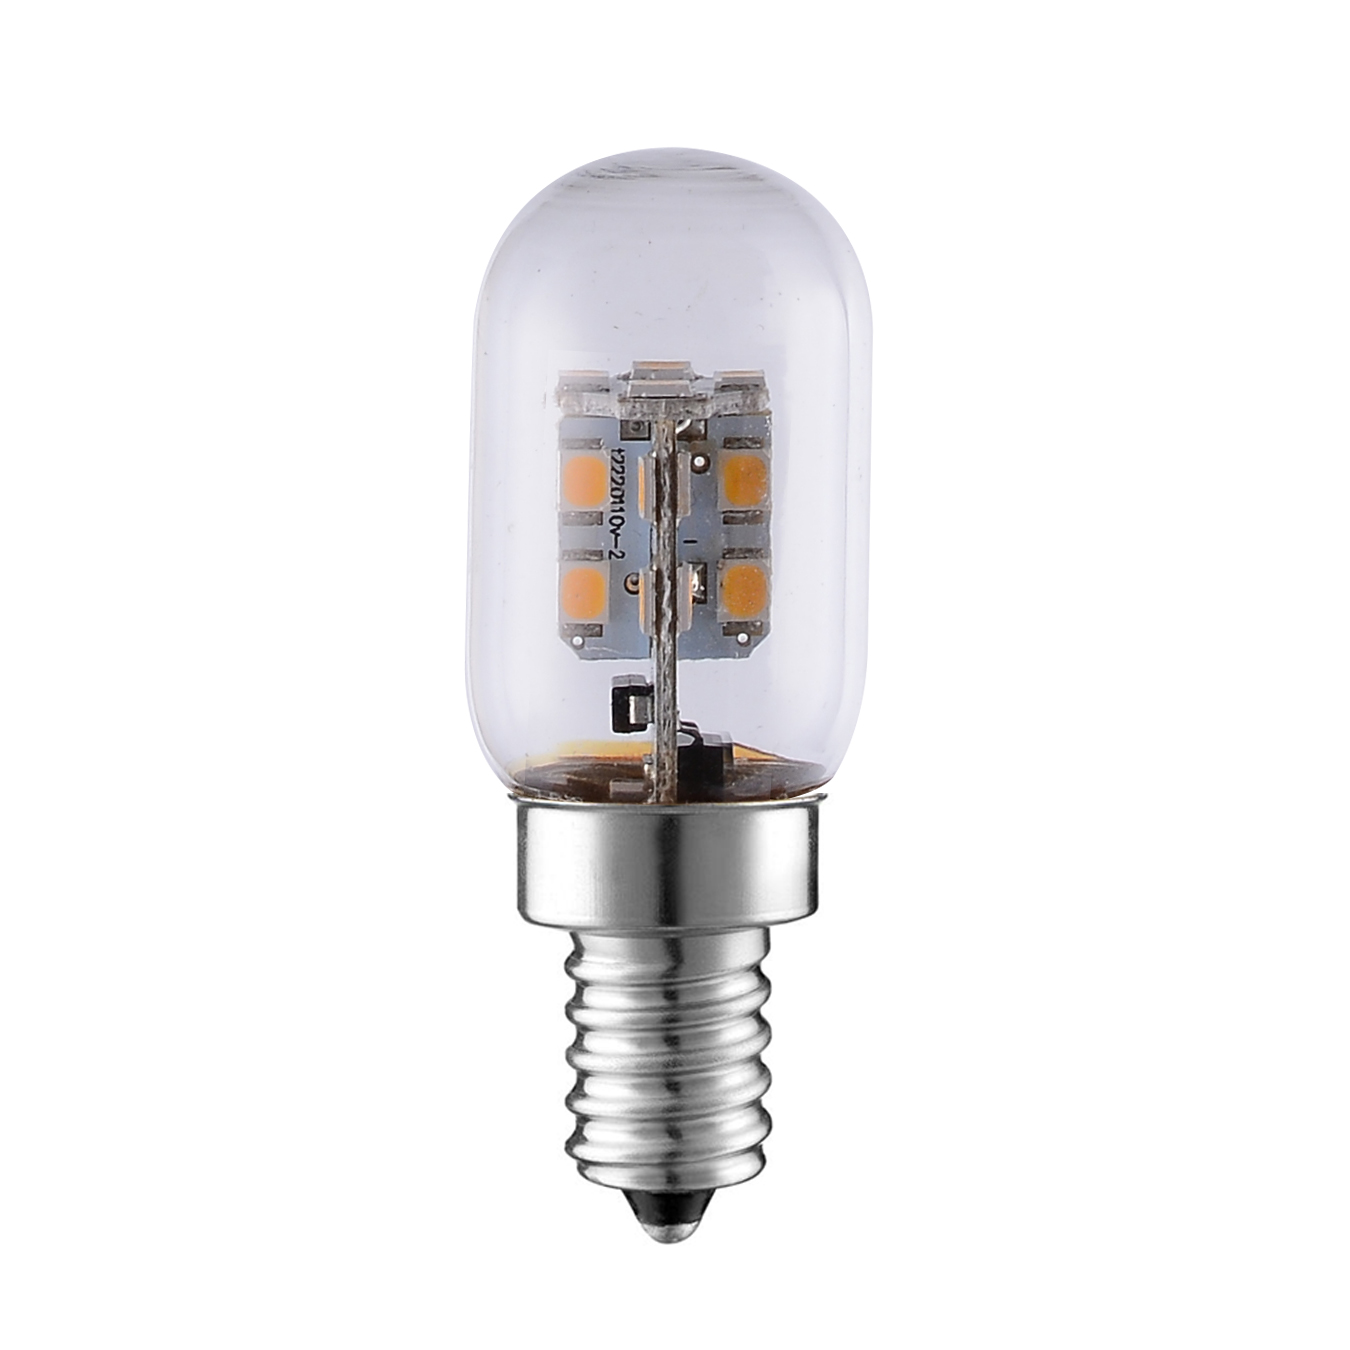 refrigerator light bulb. list detail · led frigidaire refrigerator light bulb